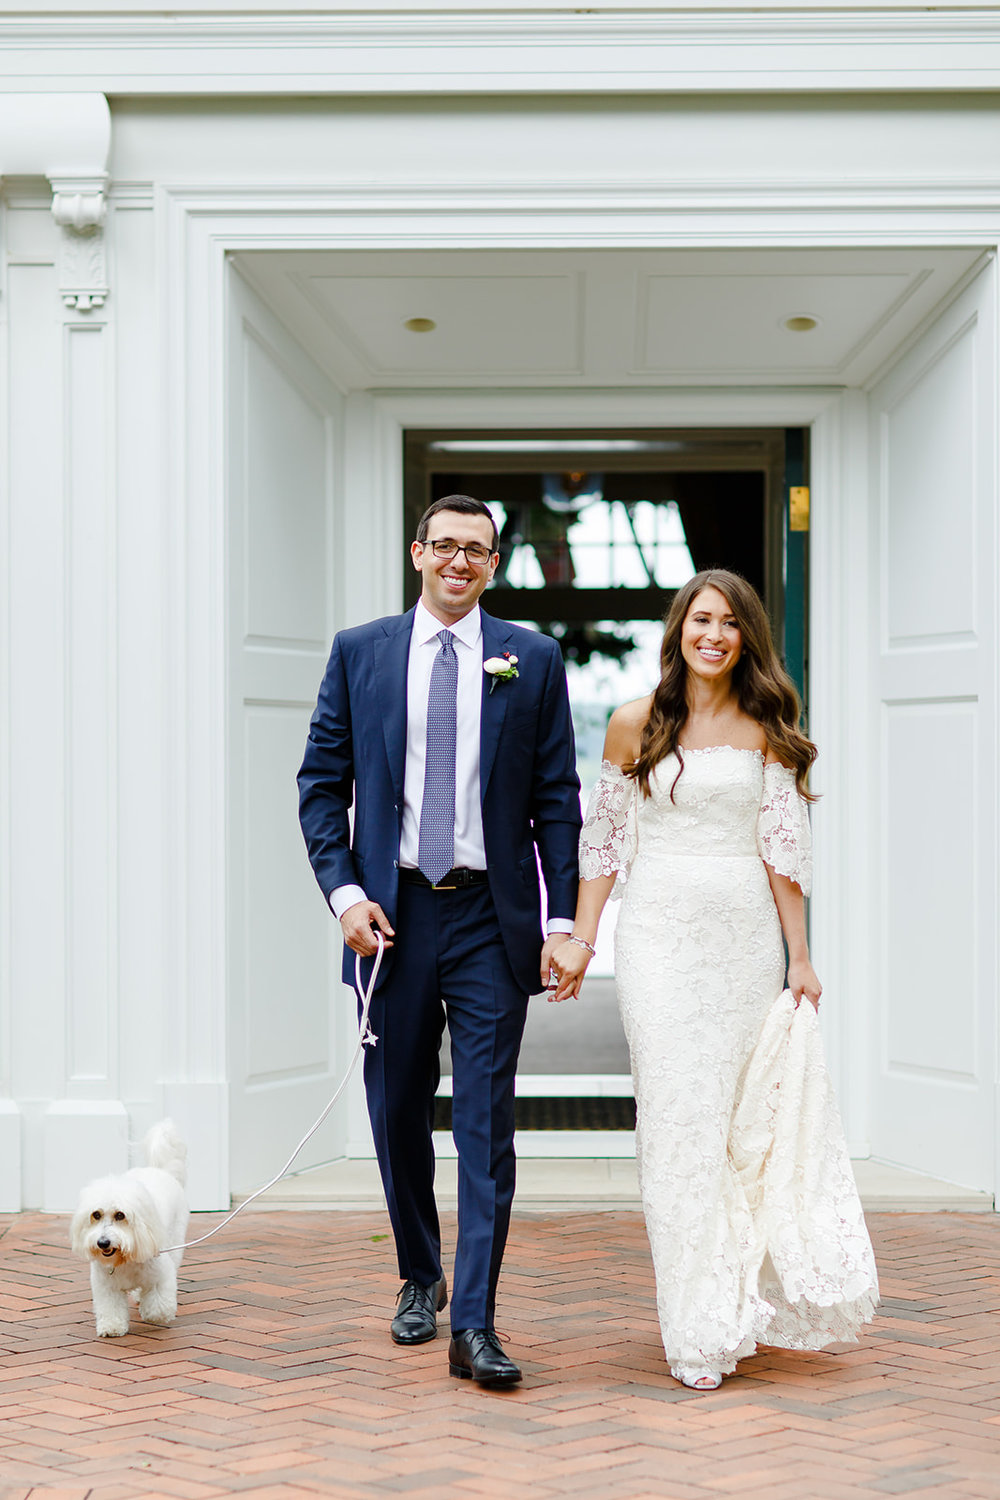 The bride and groom wanted natural, organic portraits that didn't feel overly posed. Their choice of venue made them feel at home on their wedding day and their photos reflect how relaxed they were as they were able to enjoy each moment of their day.